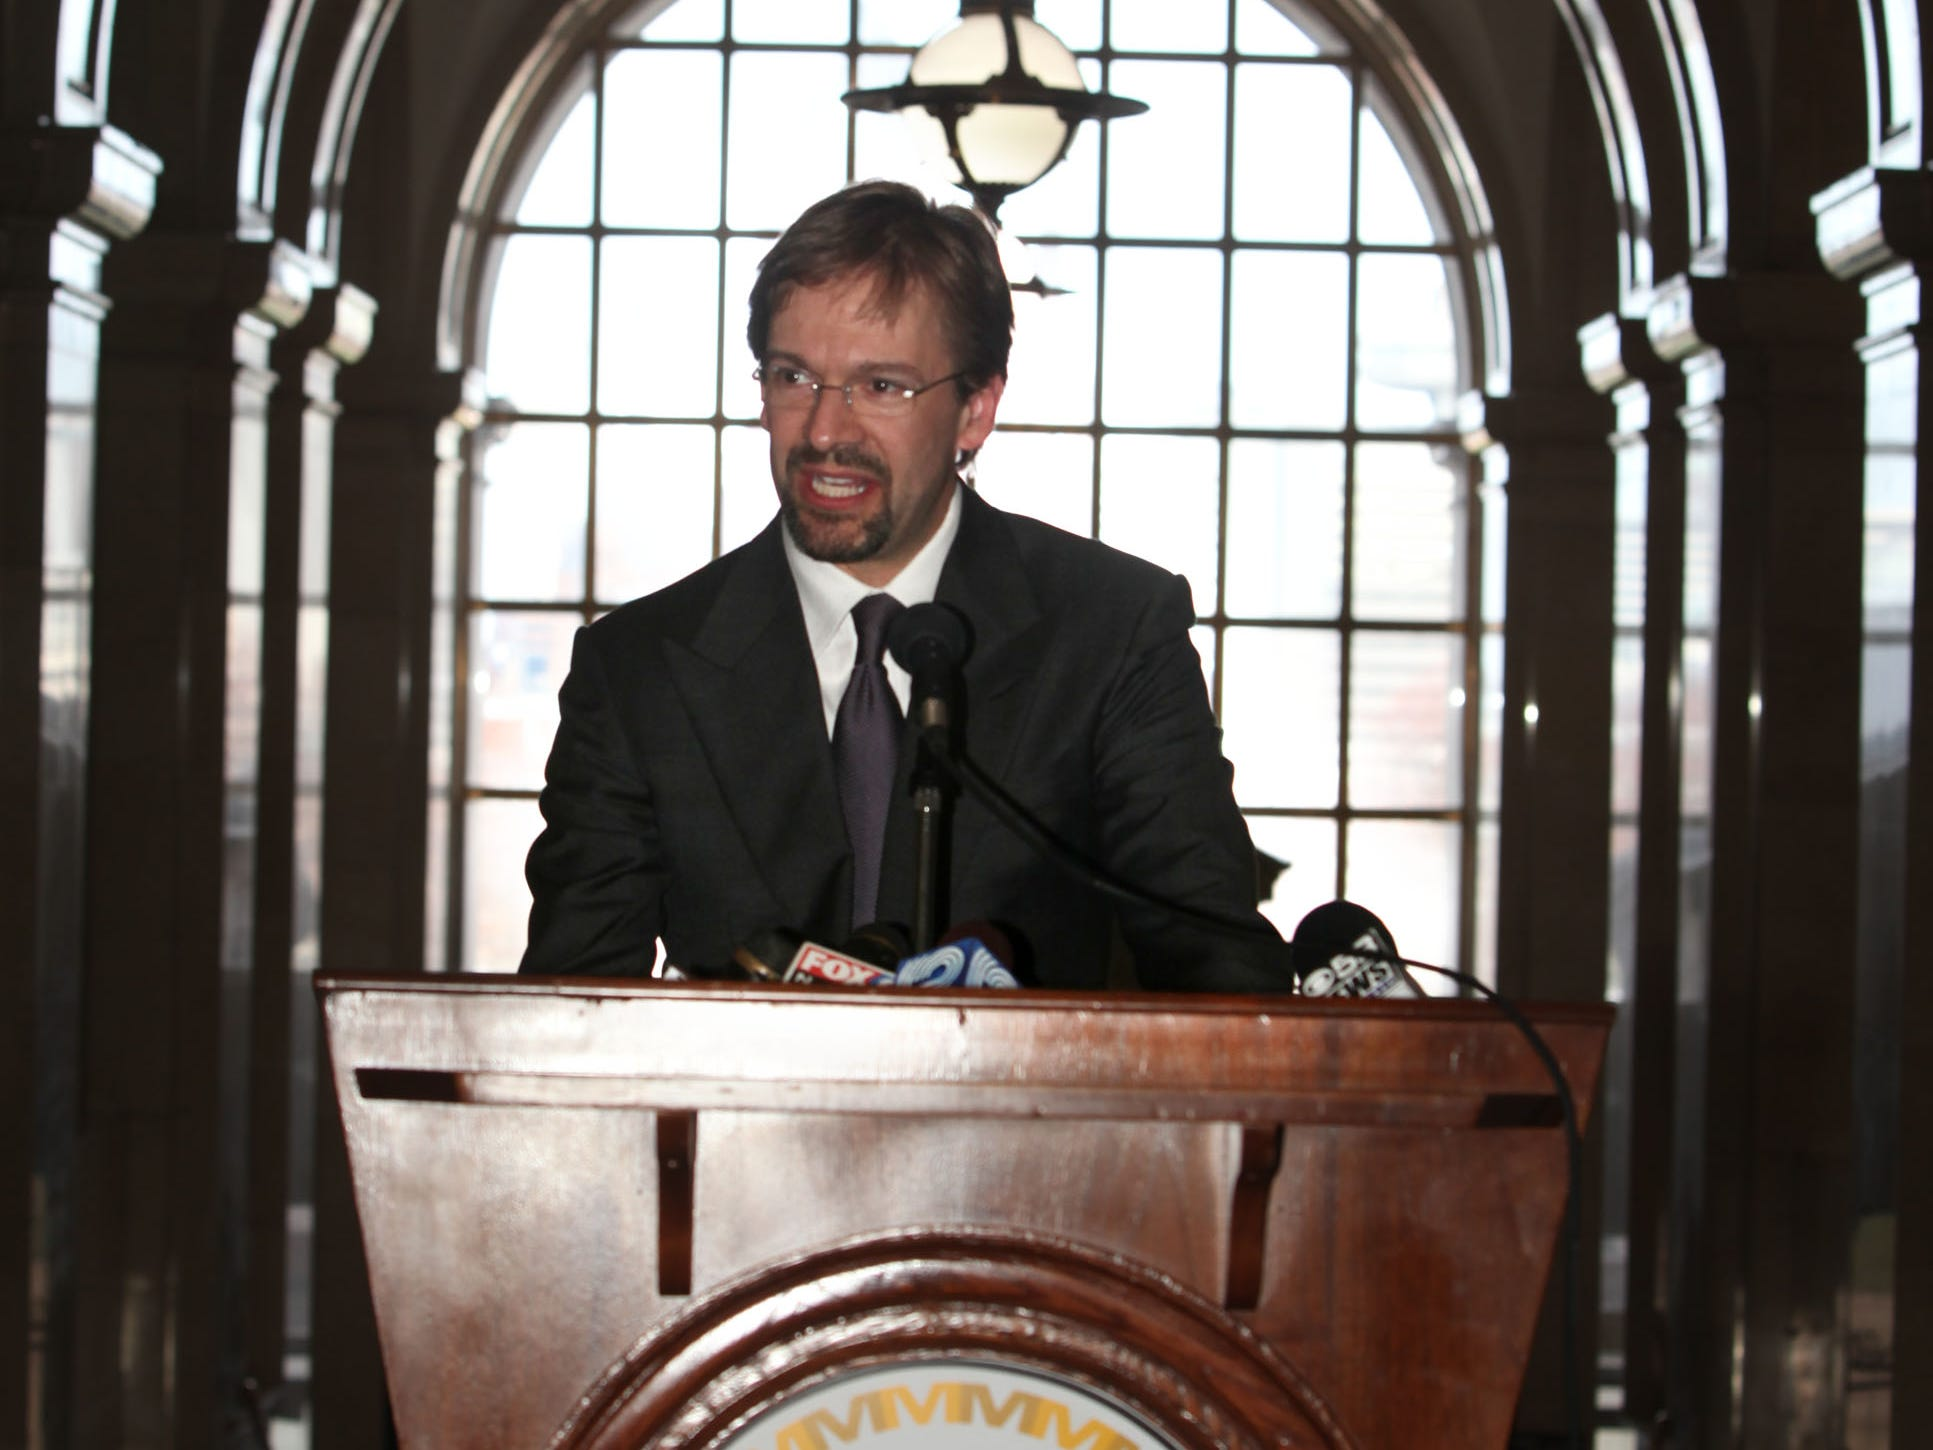 2011: Milwaukee County Executive Chris Abele addresses the crowd after he was sworn into office at the Milwaukee Courthouse rotunda.